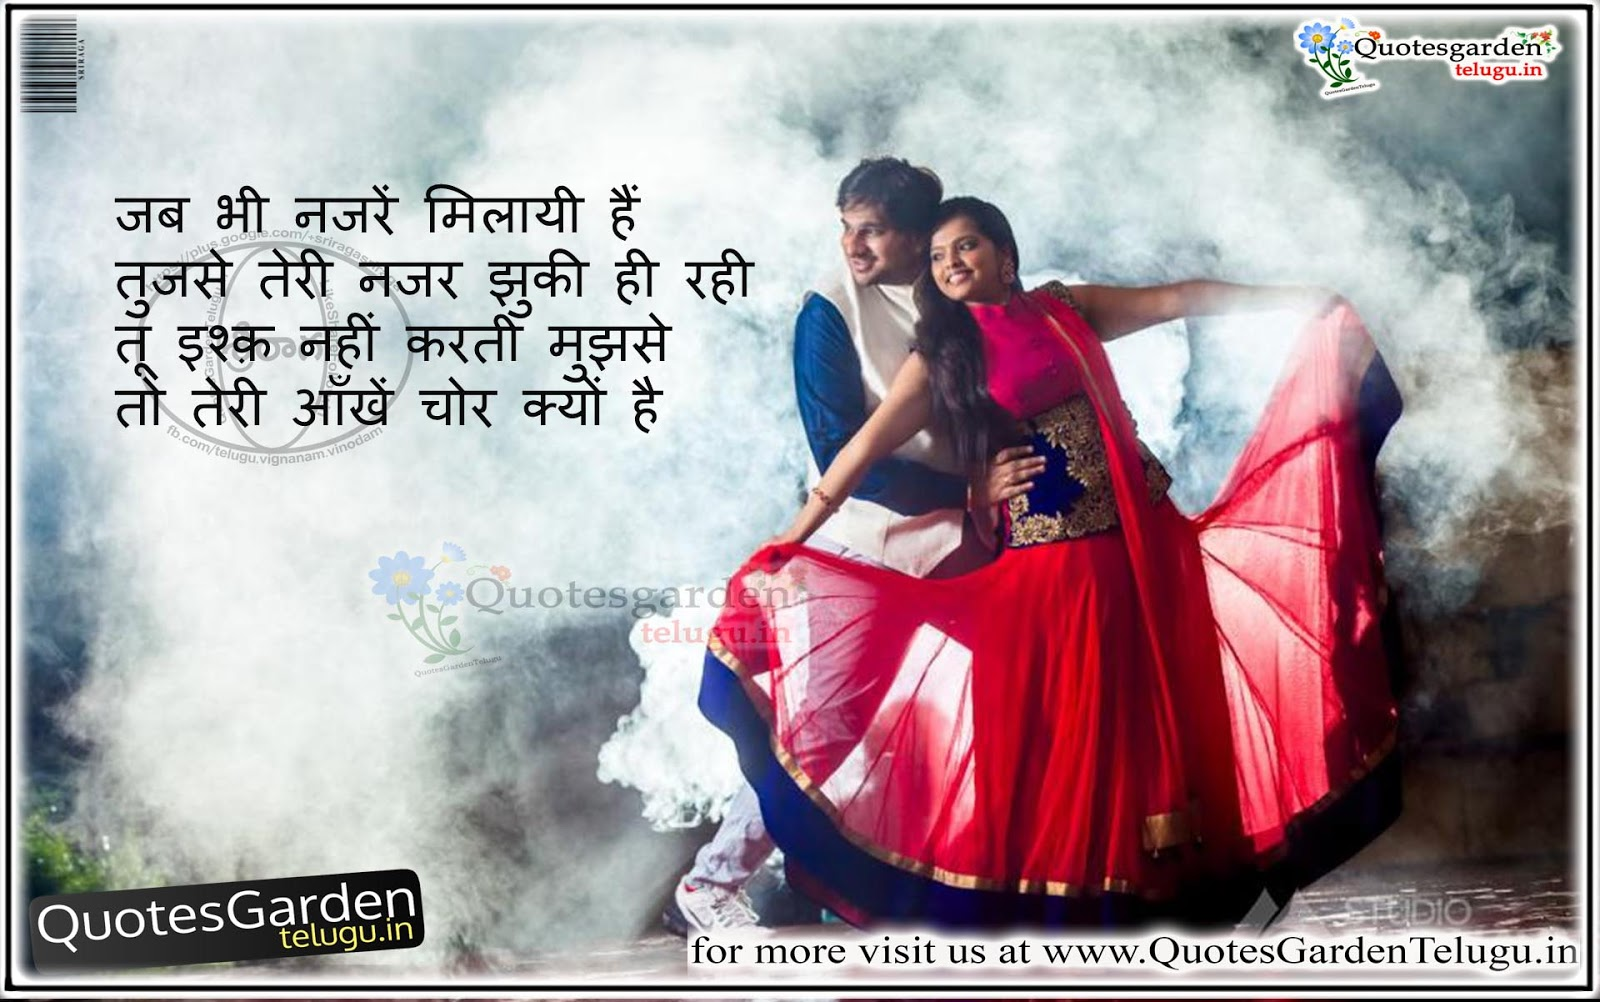 best of love quotes in hindi - Love shayari - Love messages QUOTES ...